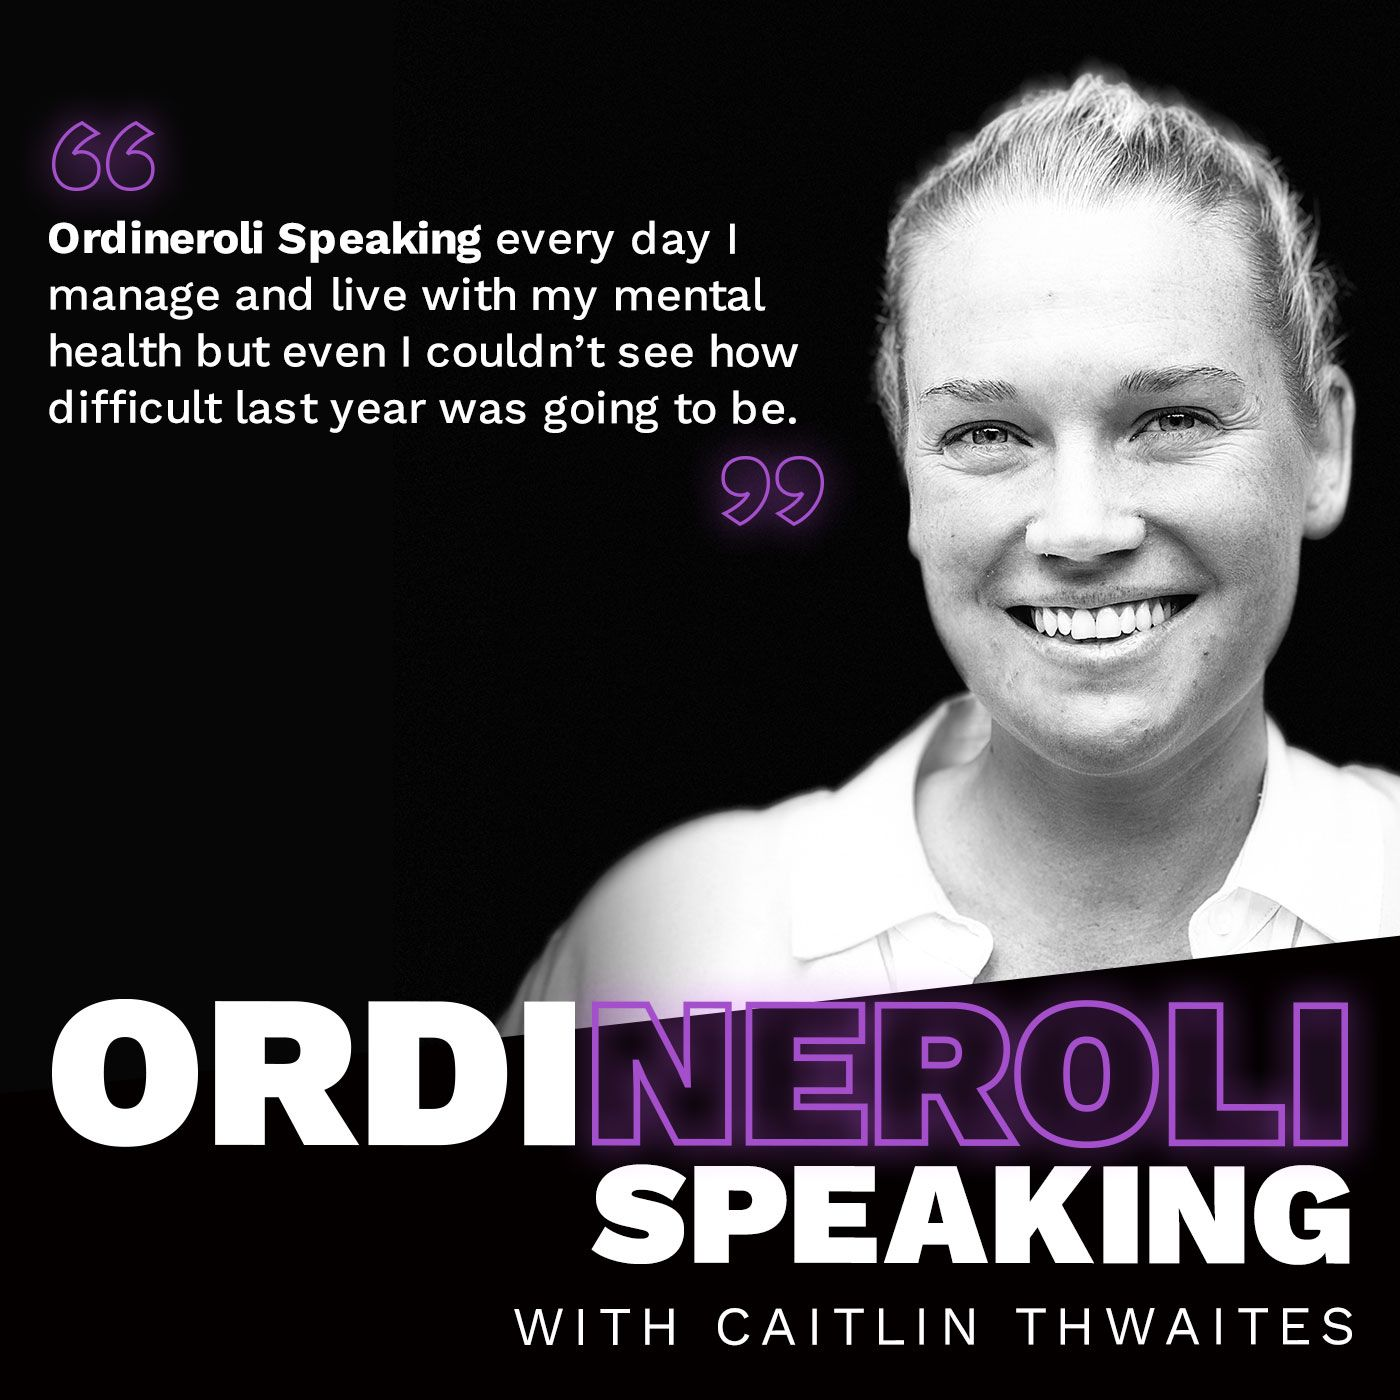 Caitlin Thwaites - Ordineroli Speaking